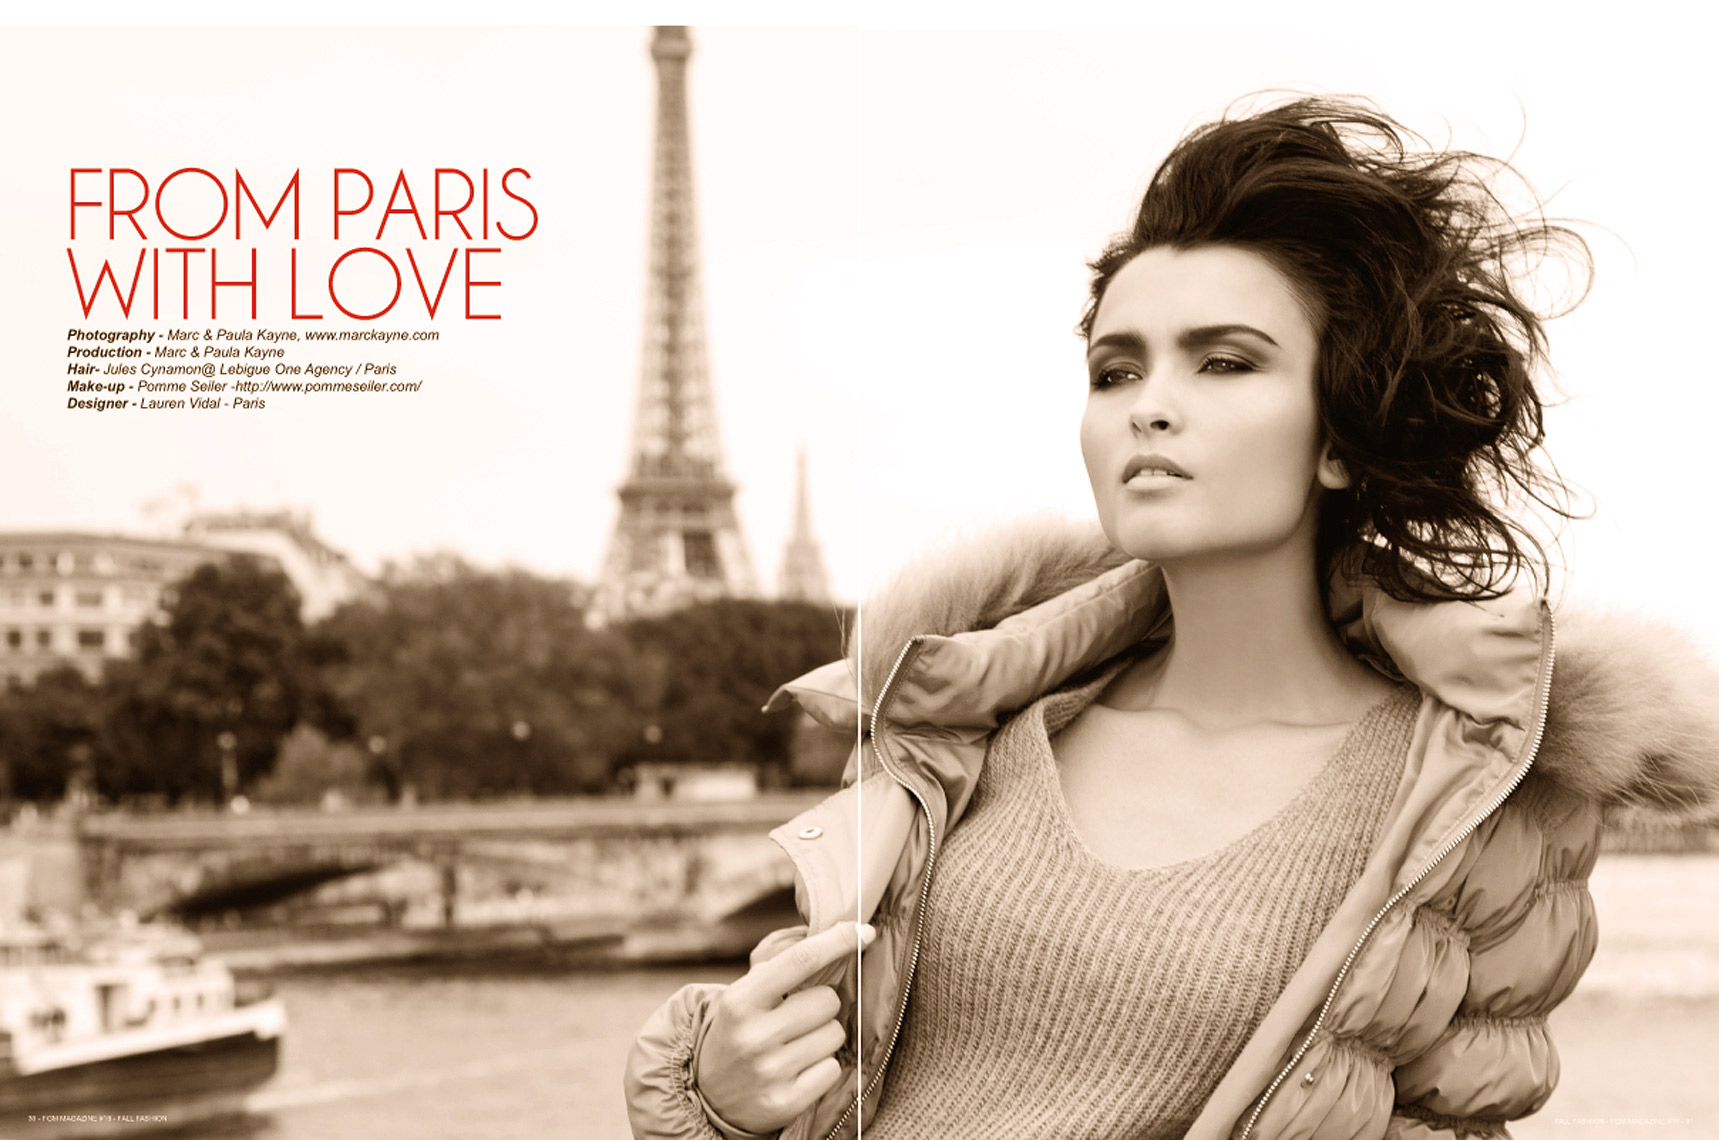 1_FROM_PARIS_WITH_LOVE.jpg